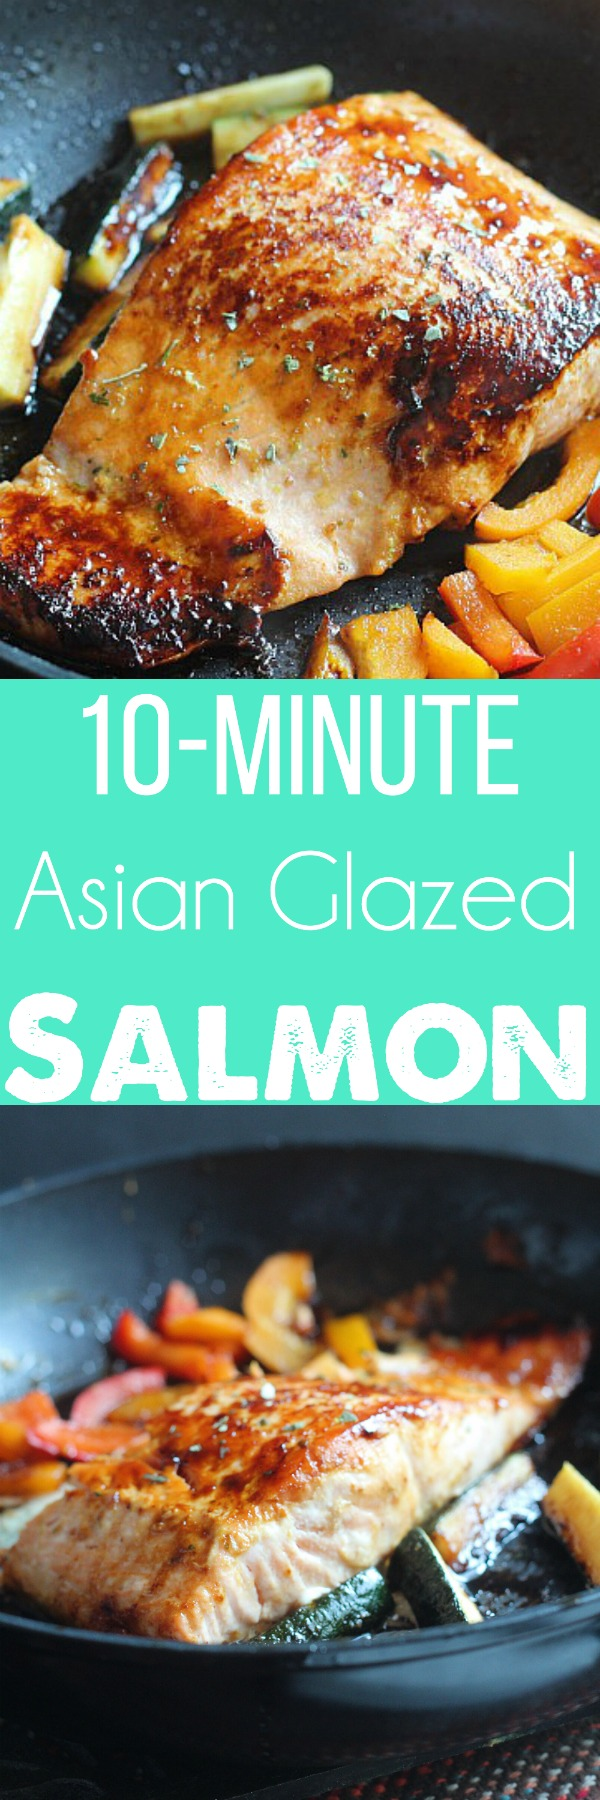 Delicous Salmon dinner in under 15 minutes? YES PLEASE! This quick Asian glaze is perfect for Circulon pans because they're non-stick. Serve with rice or couscous. via @DashOfEvans